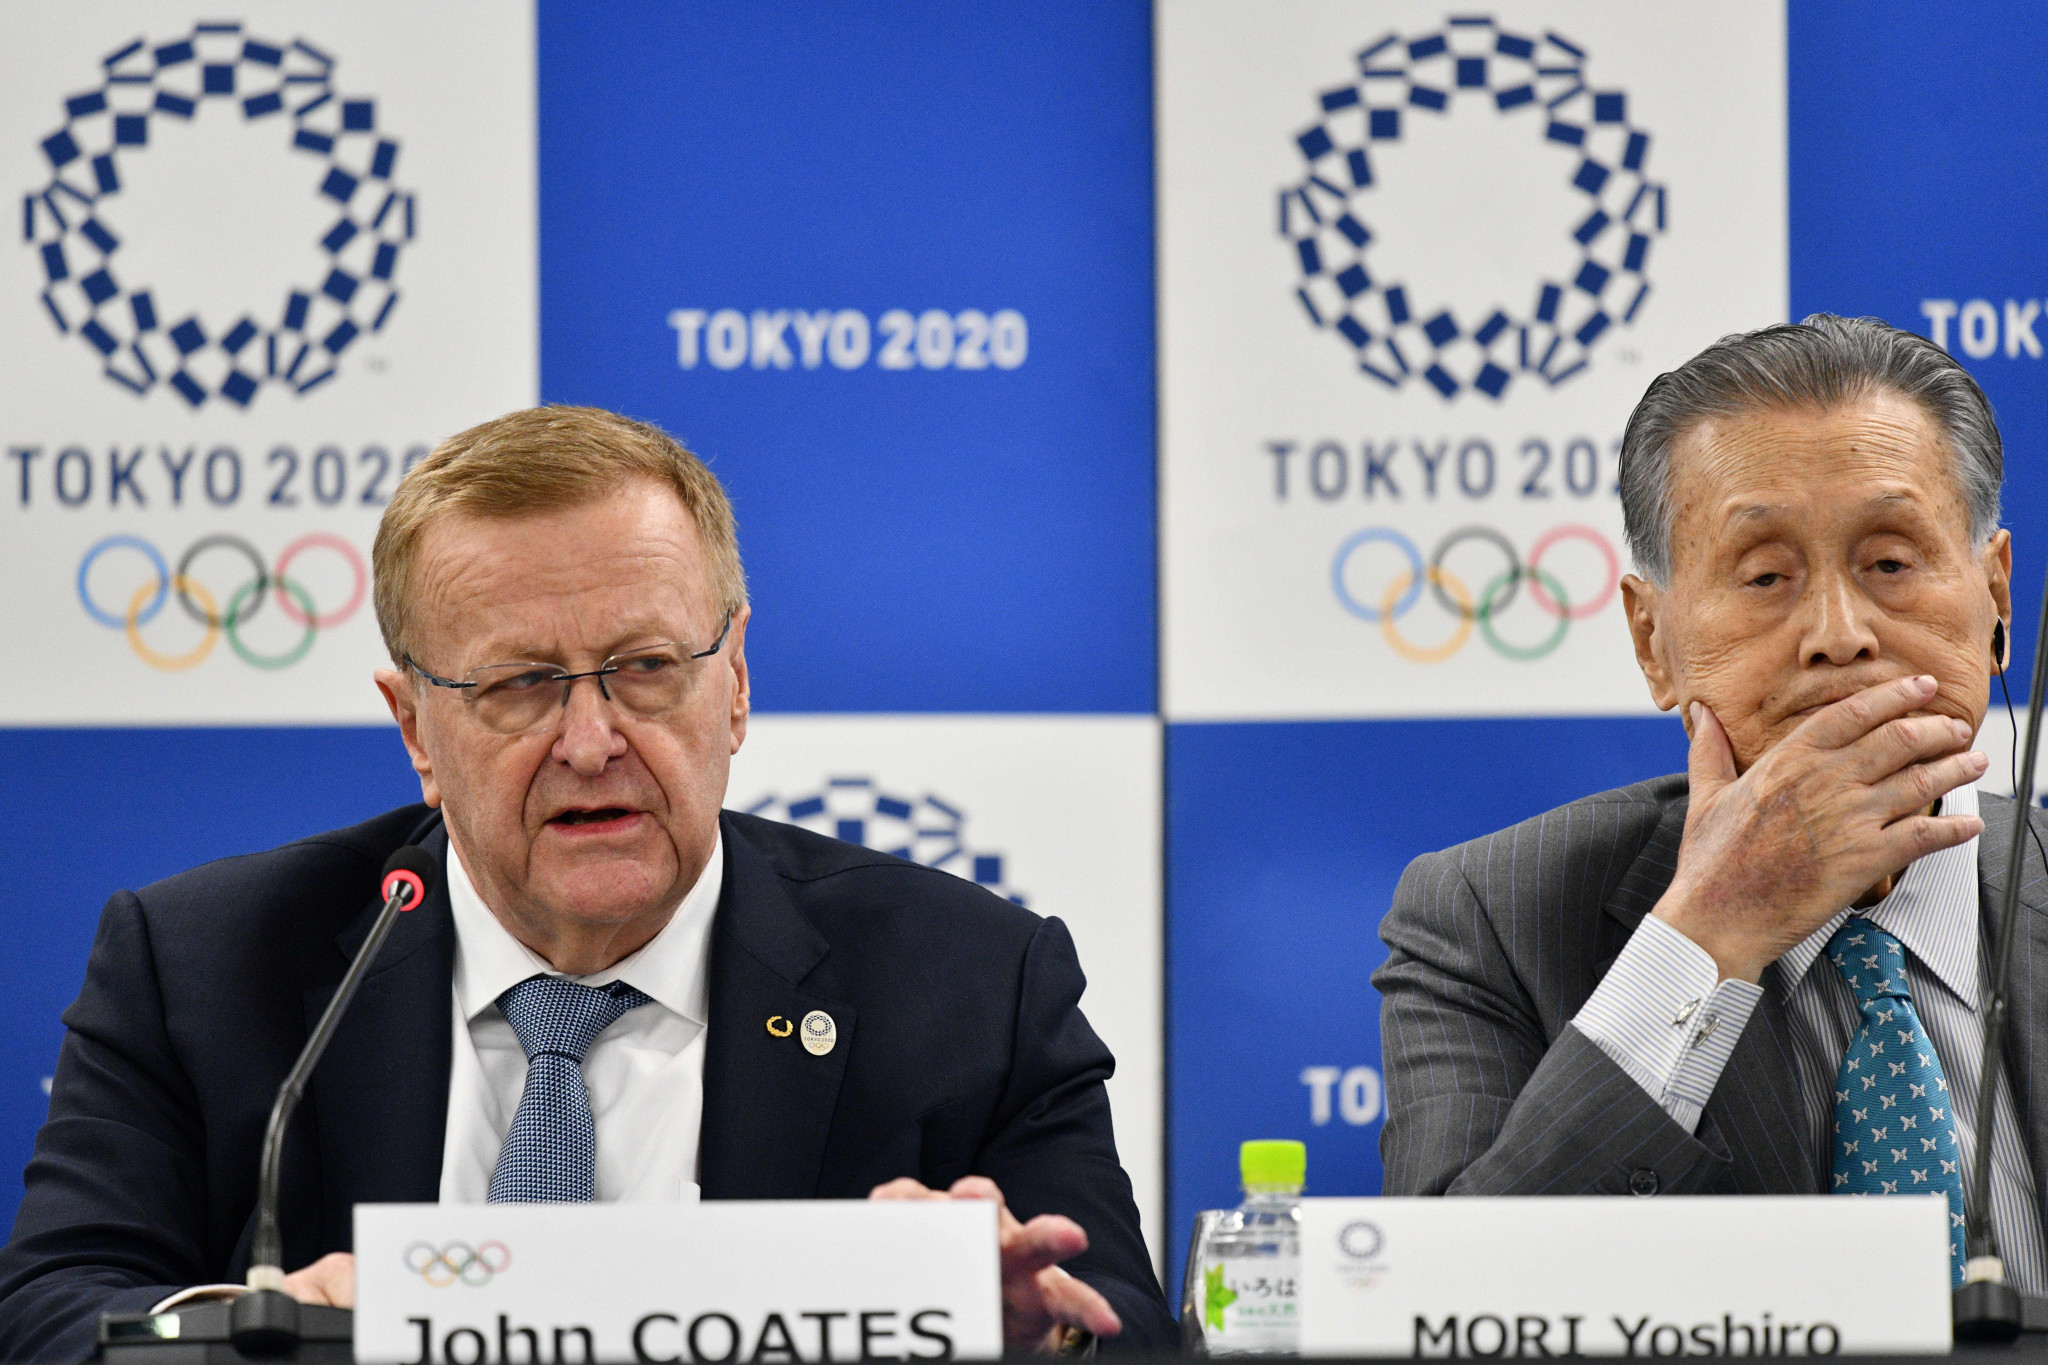 Confirmation of the start time for the cross-country eventing came following a two-day IOC project review of Tokyo 2020, where measures dealing with the severe heat expected during the Olympic Games were discussed ©Getty Images